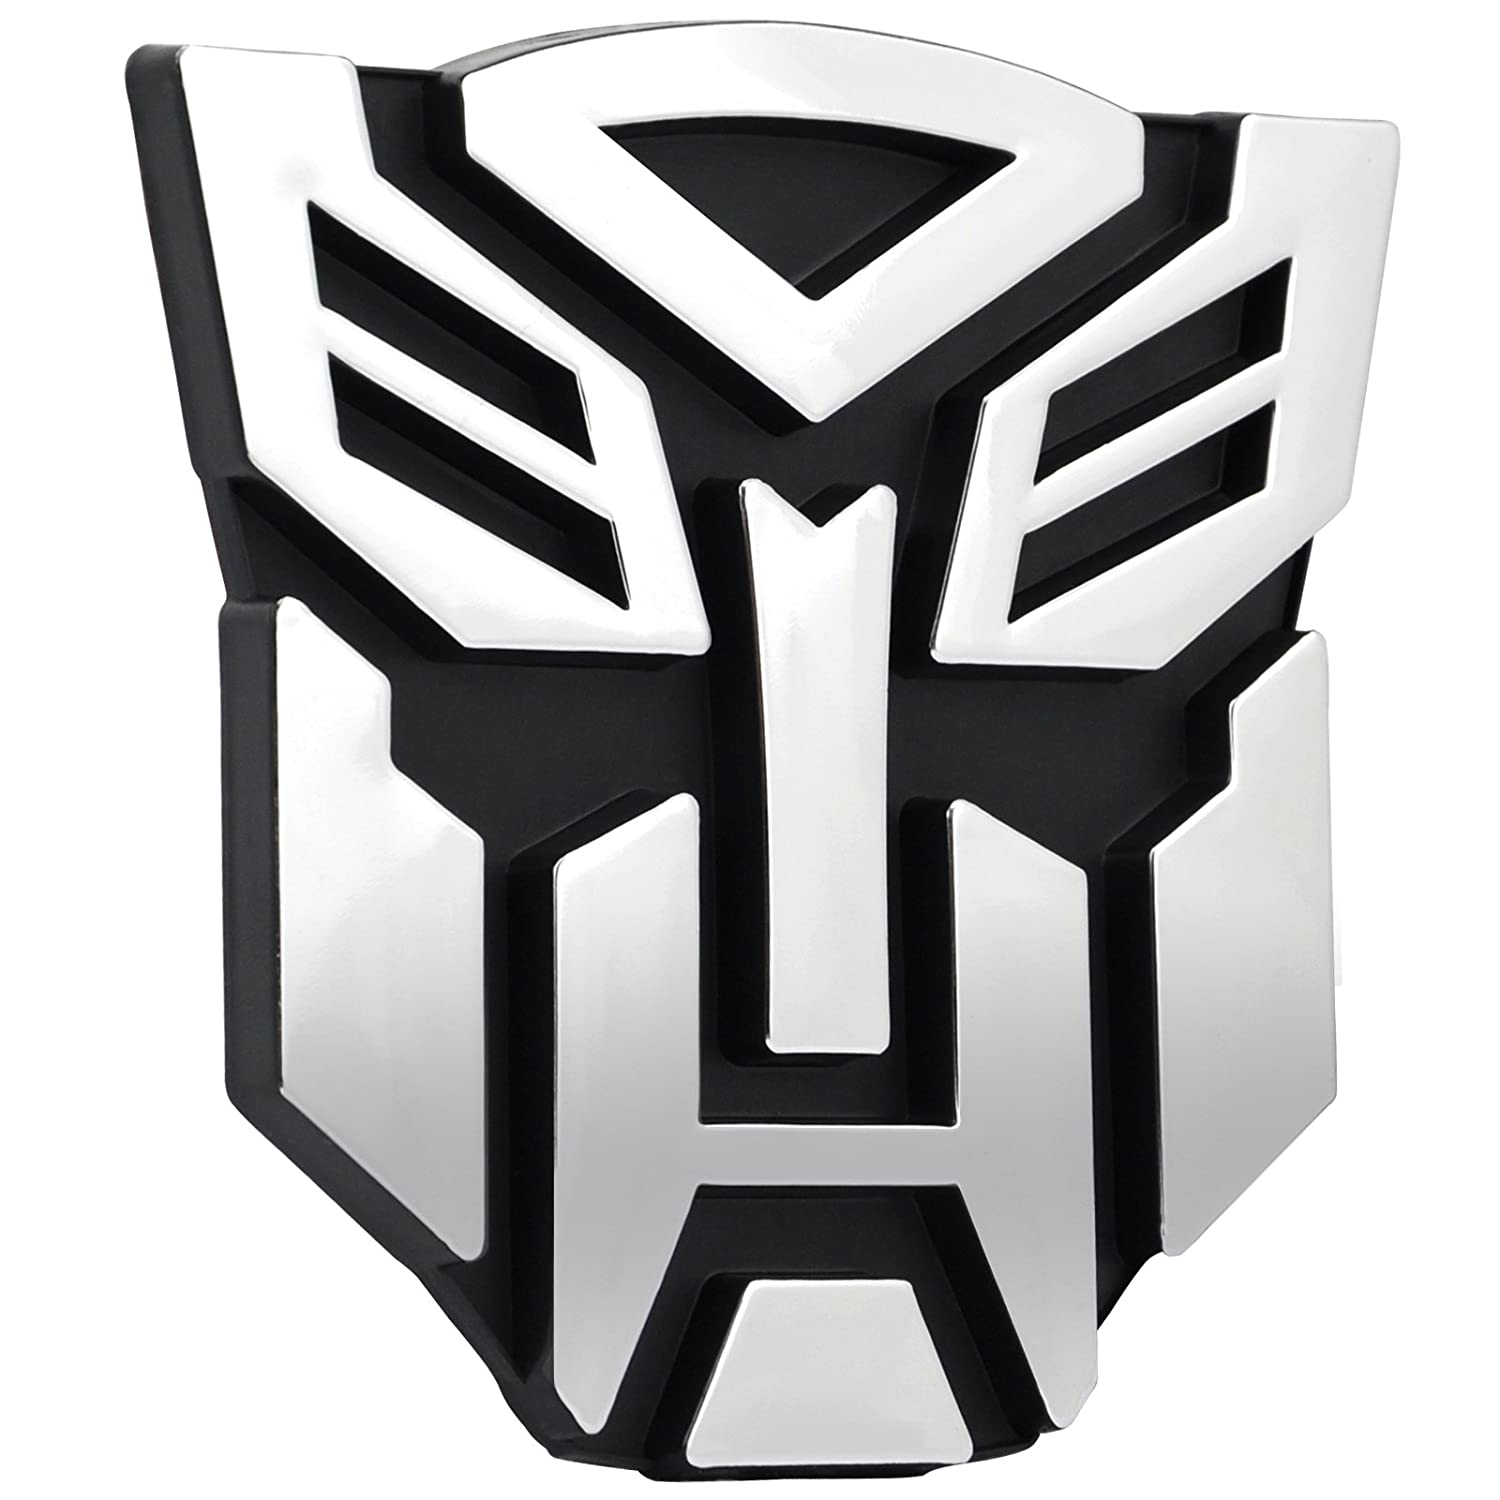 Trixes Autobots Logo Symbol Car Decal Sticker Badge Amazon